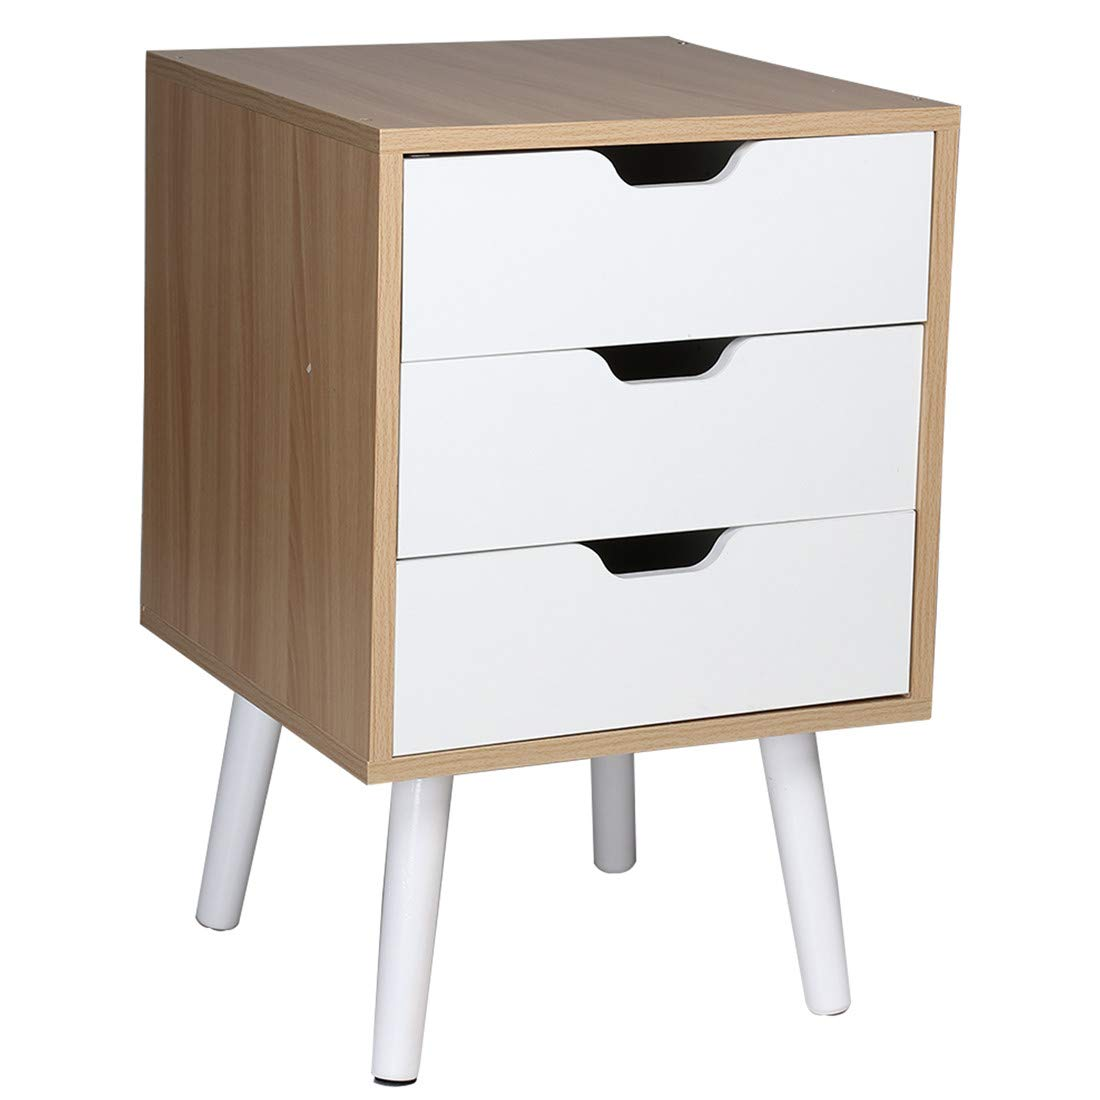 Pair of High Gloss Bedside Cabinet Two Drawer Tea Bedroom Chest Draw Units Table